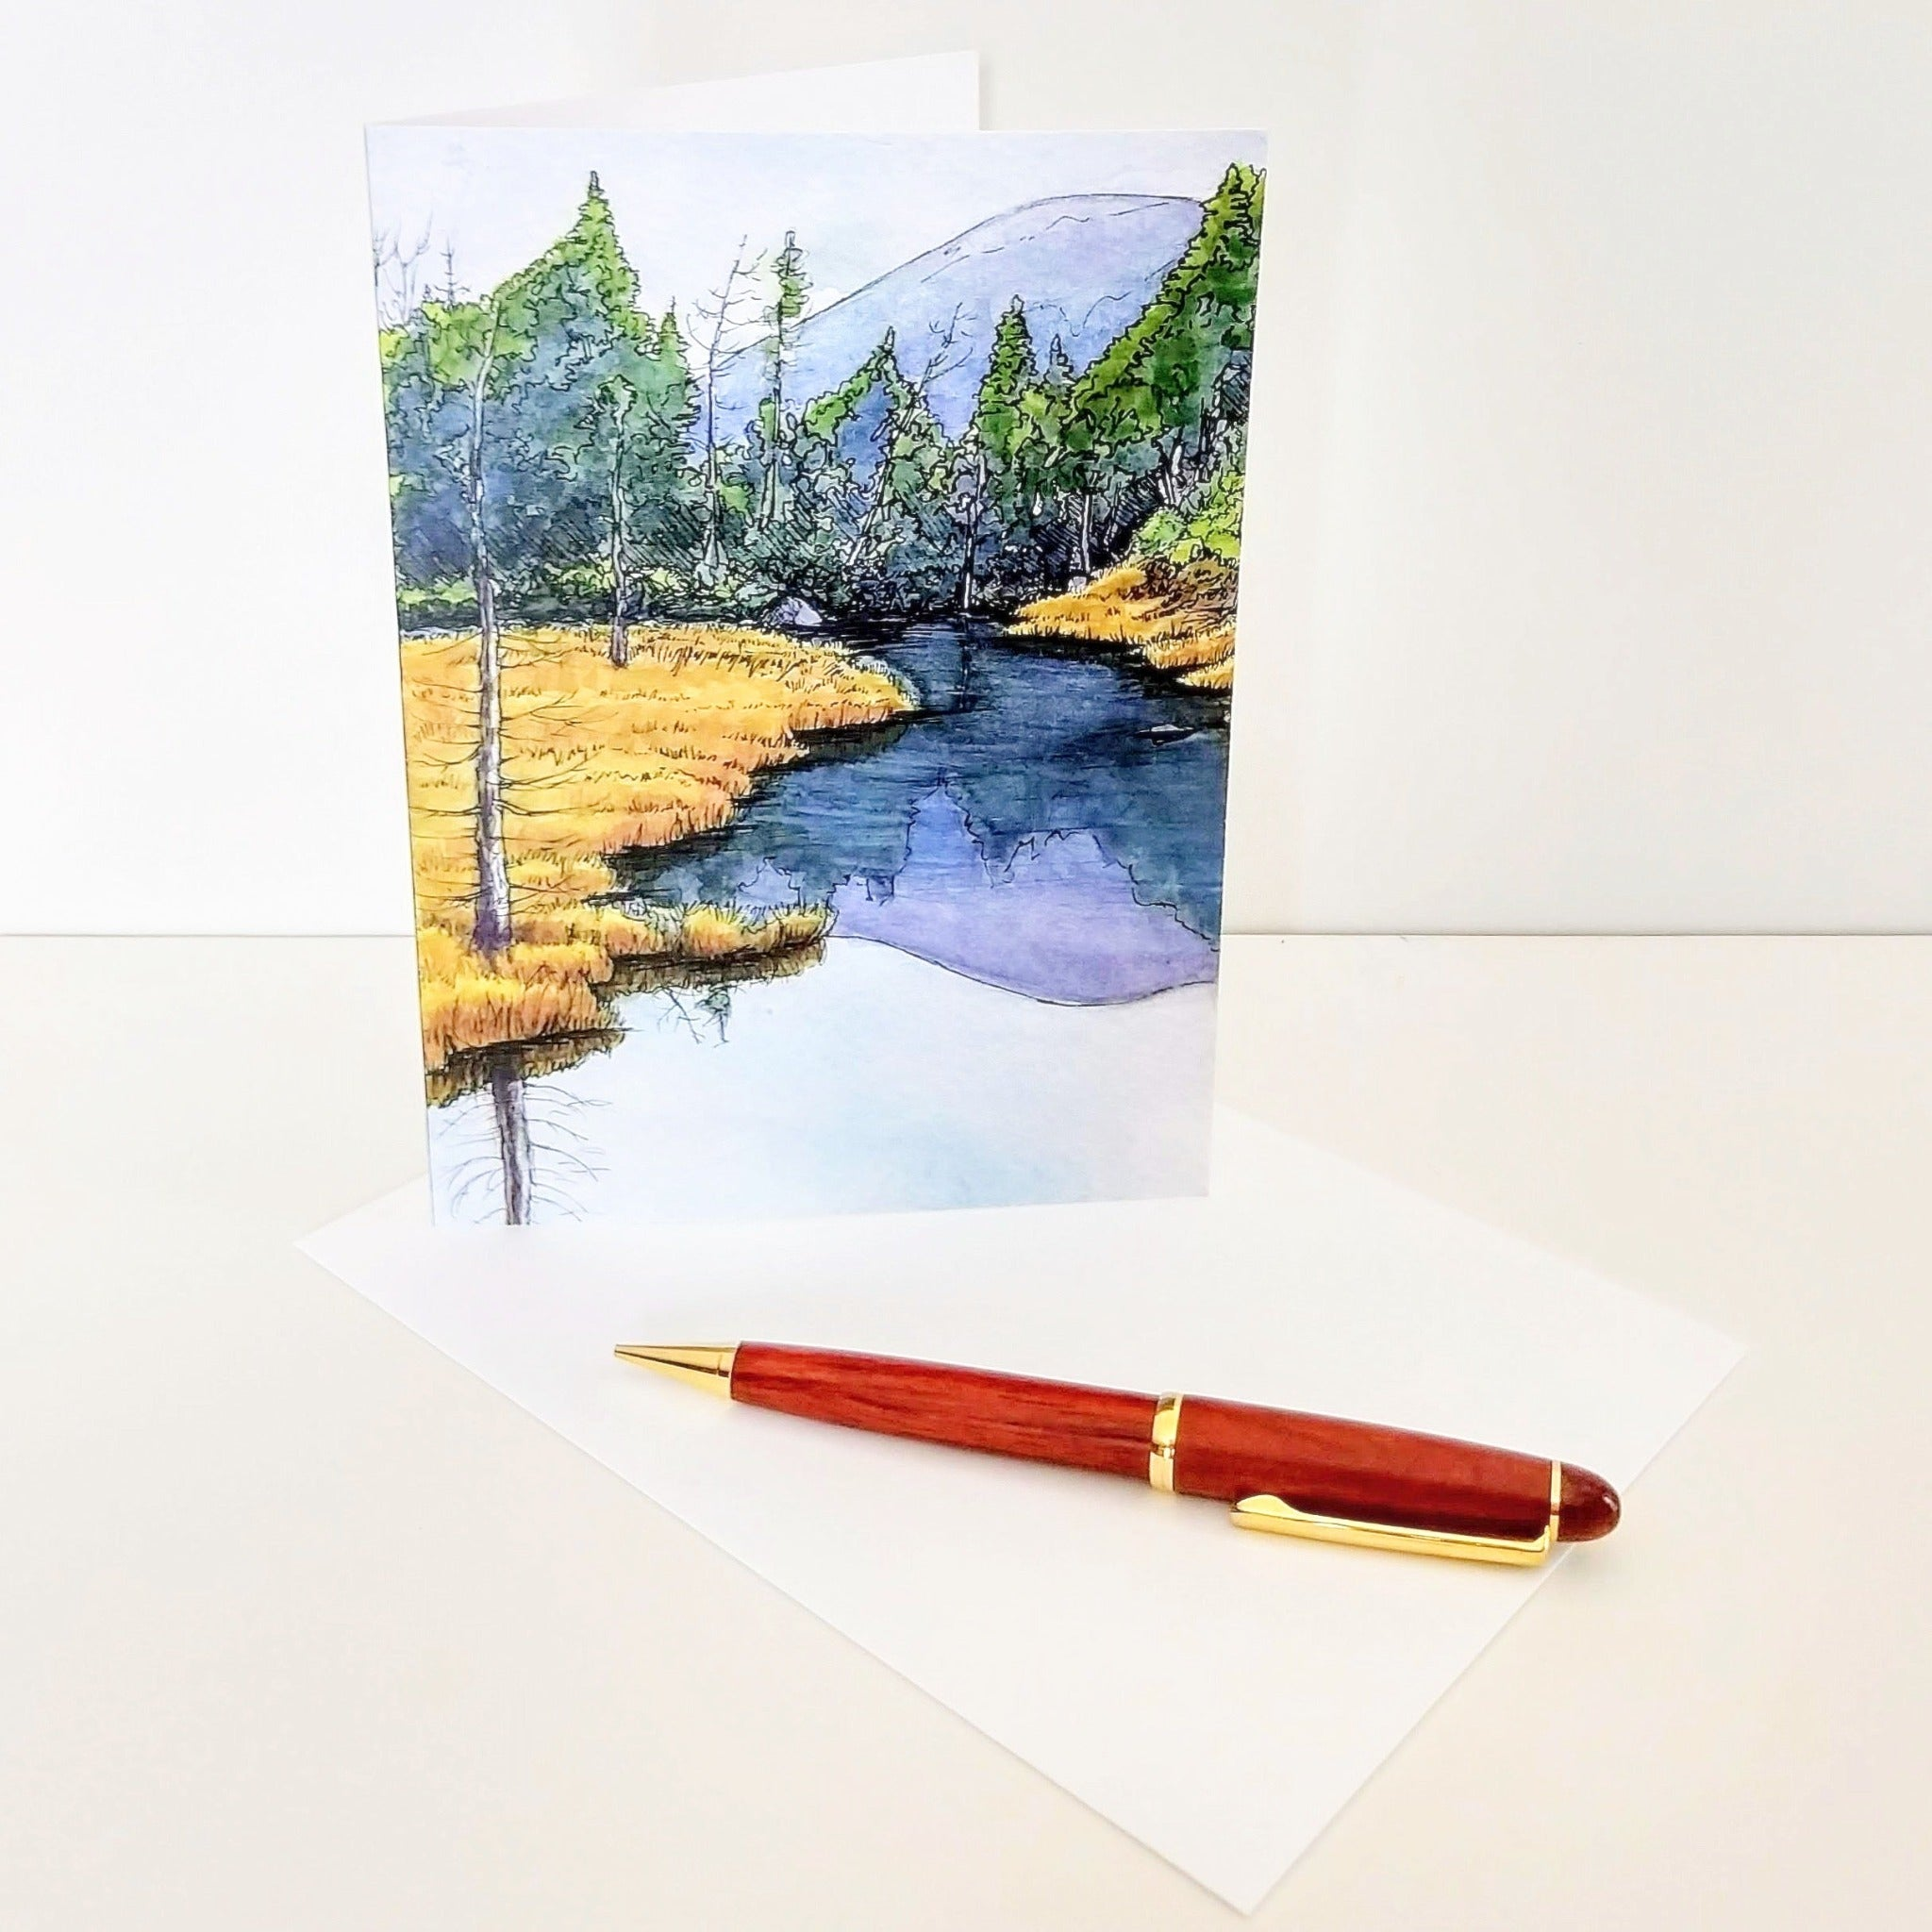 In Pinkham Notch, large blank greeting card